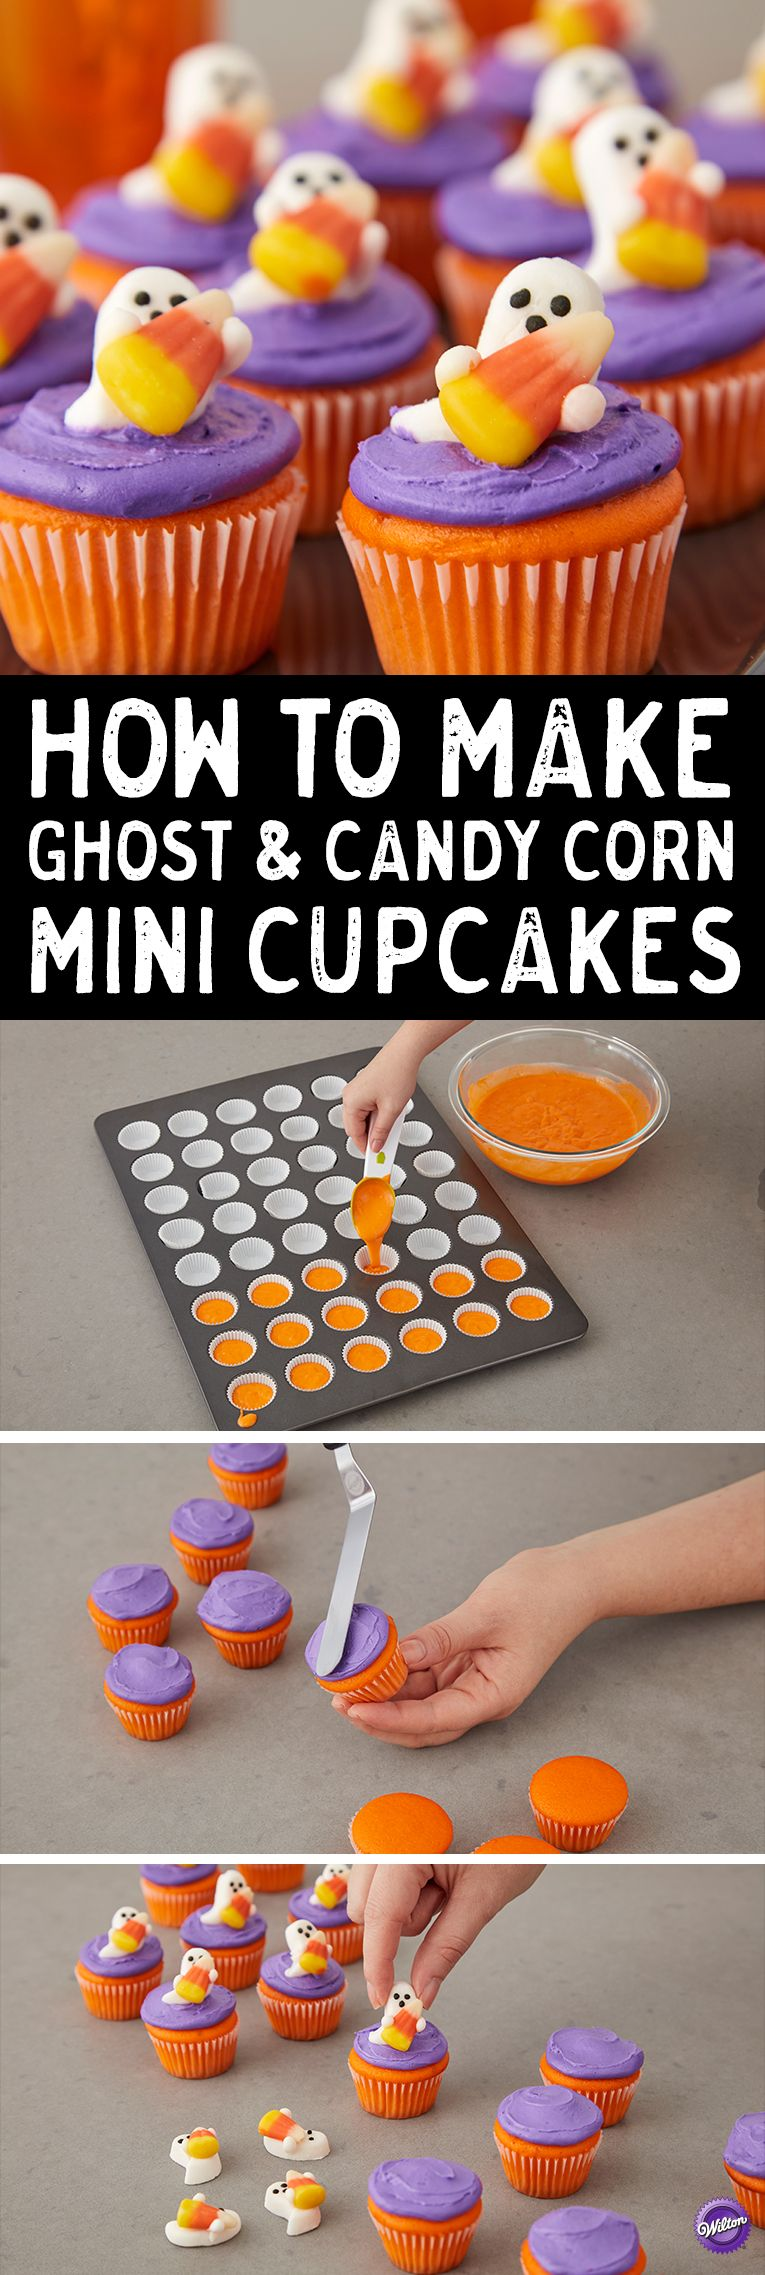 How to Make Ghost & Candy Corn Mini Cupcakes - These mini ...